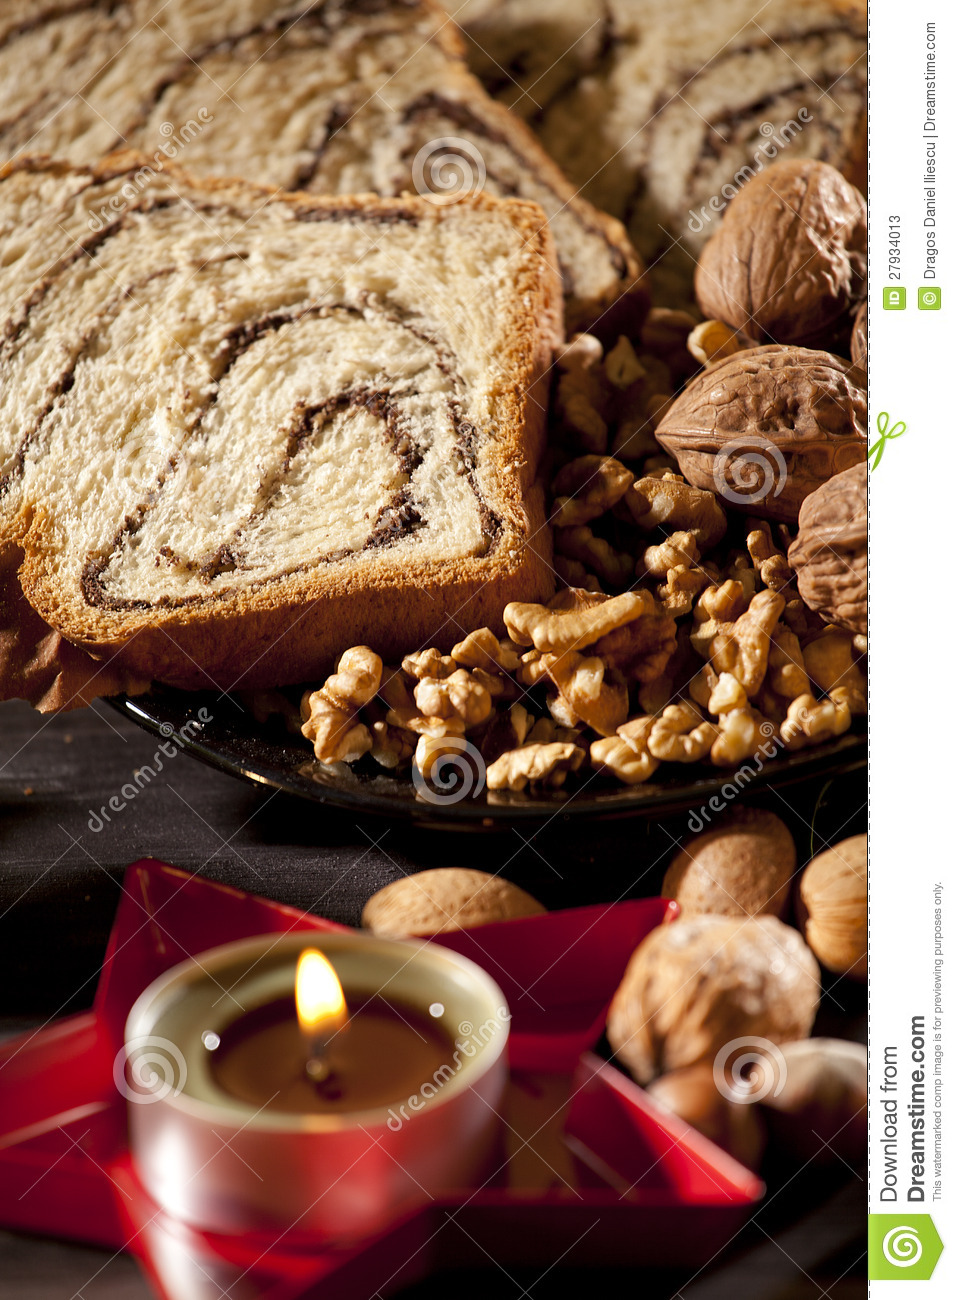 Candle And Sponge Cake Stock Photos - Image: 27934013